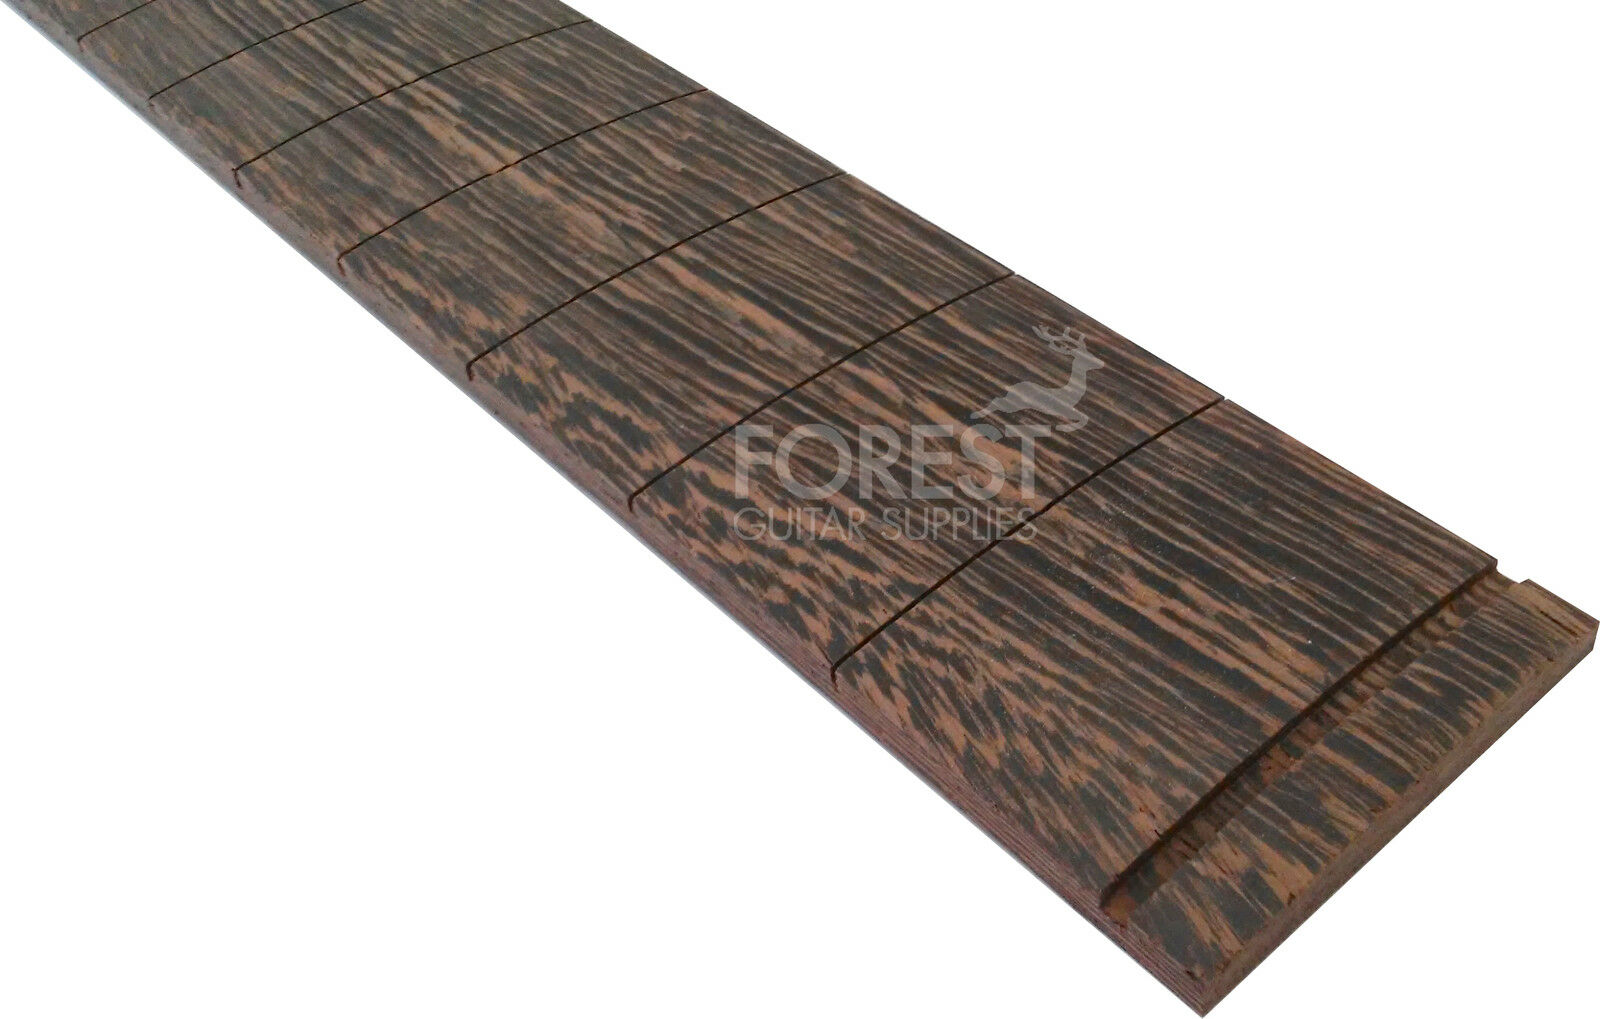 Wenge Guitar Fretboard, Fingerboard 25.5   Fender Scale Compound Radius 10-16